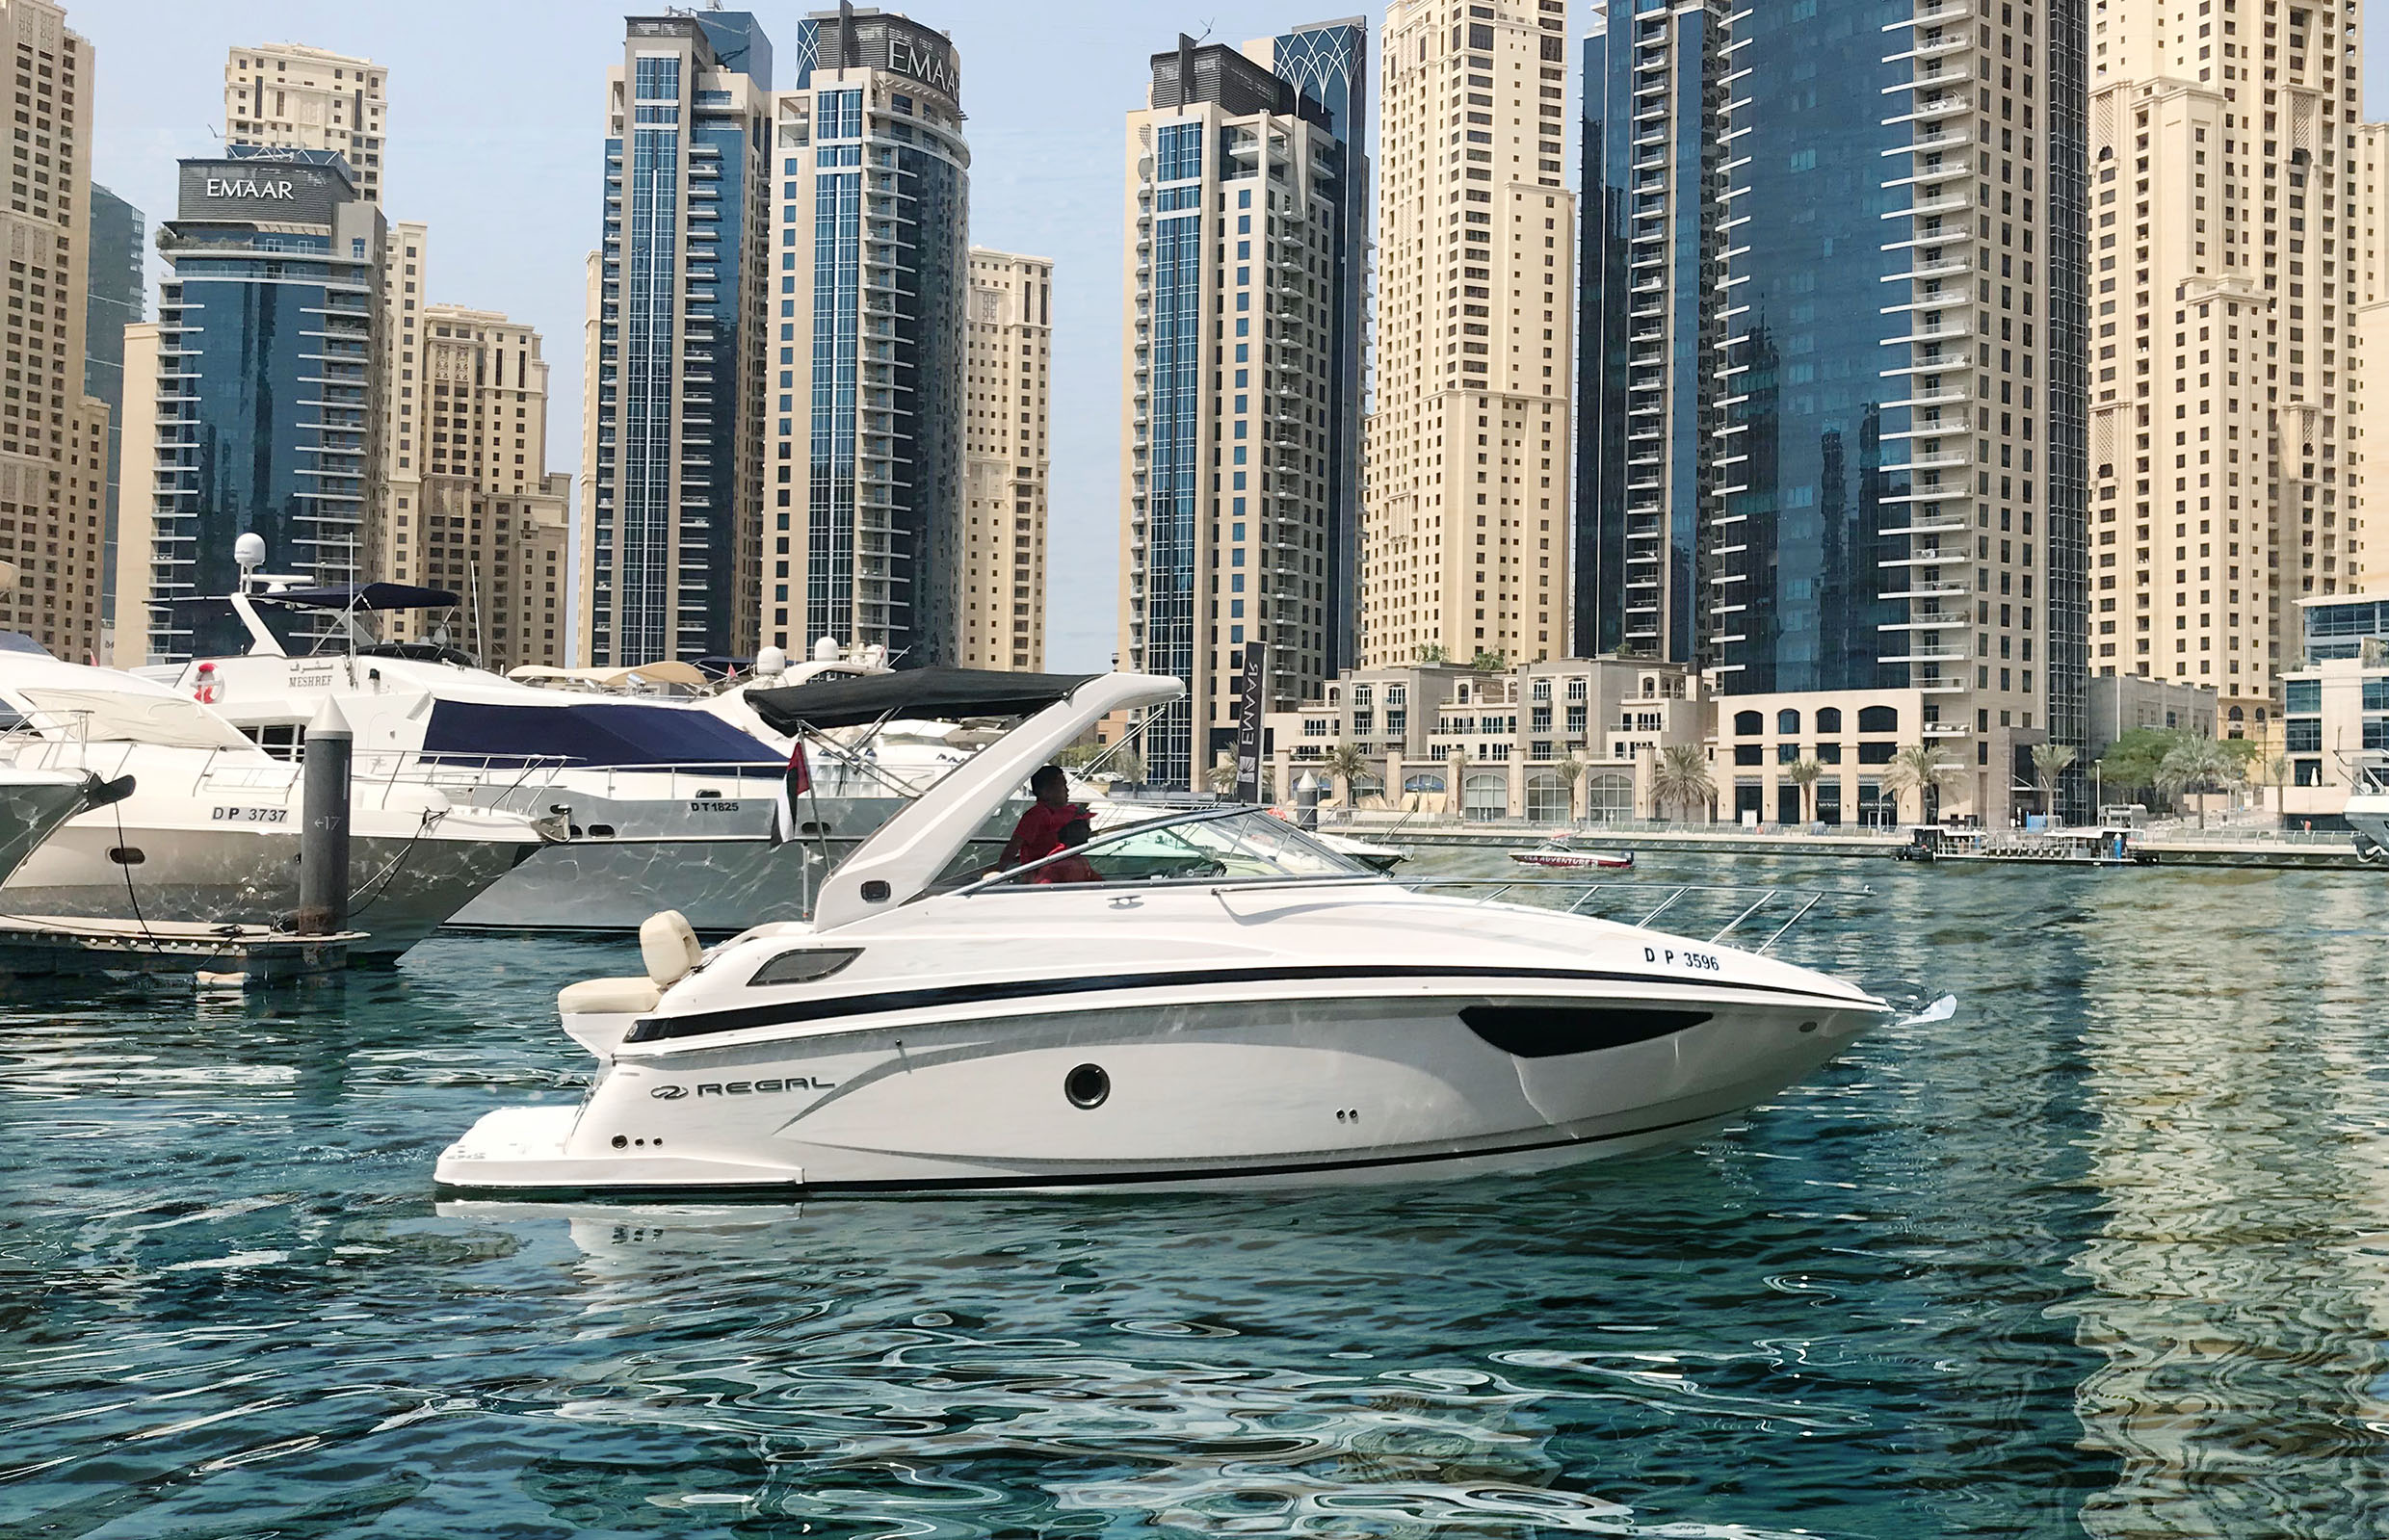 Regal Boat In Dubai